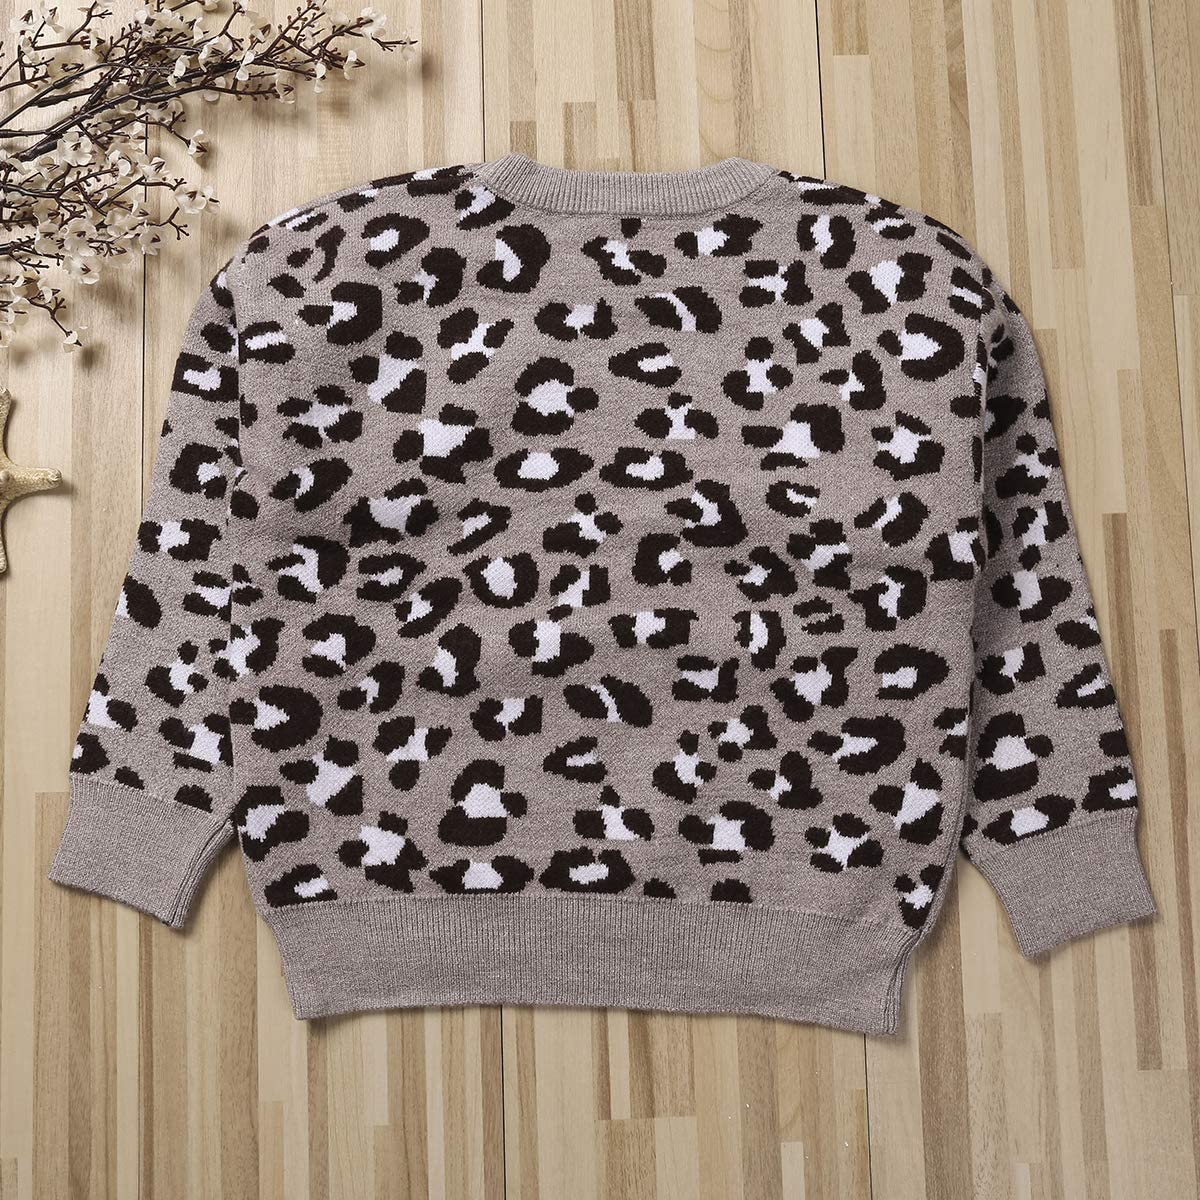 Toddler Kids Baby Girl Boy Leopard Sweater Casual Pullover Sweatshirt Tops Fall Winter Warm Clothes